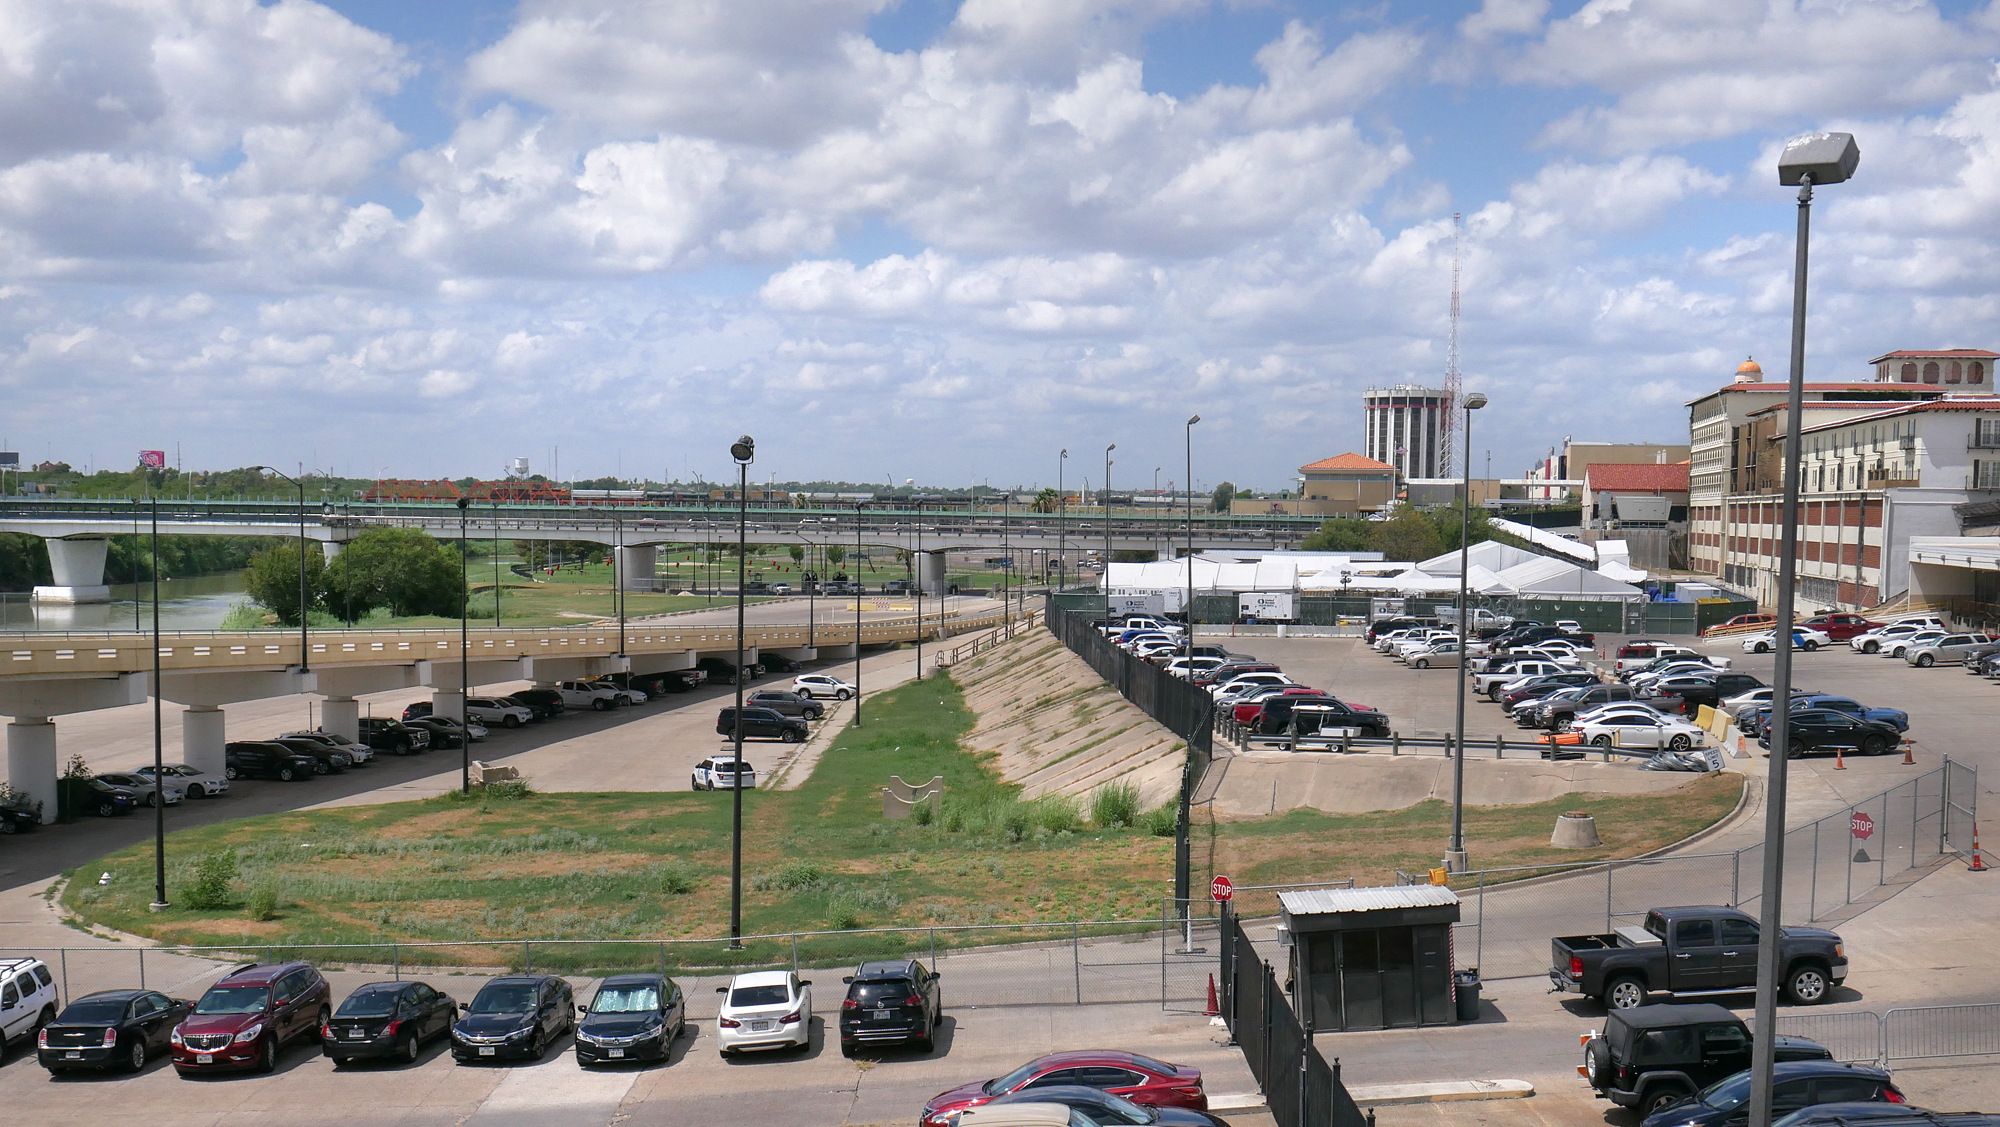 Laredo tent facility begins processing migrants, refuses entry to public, media without clearance